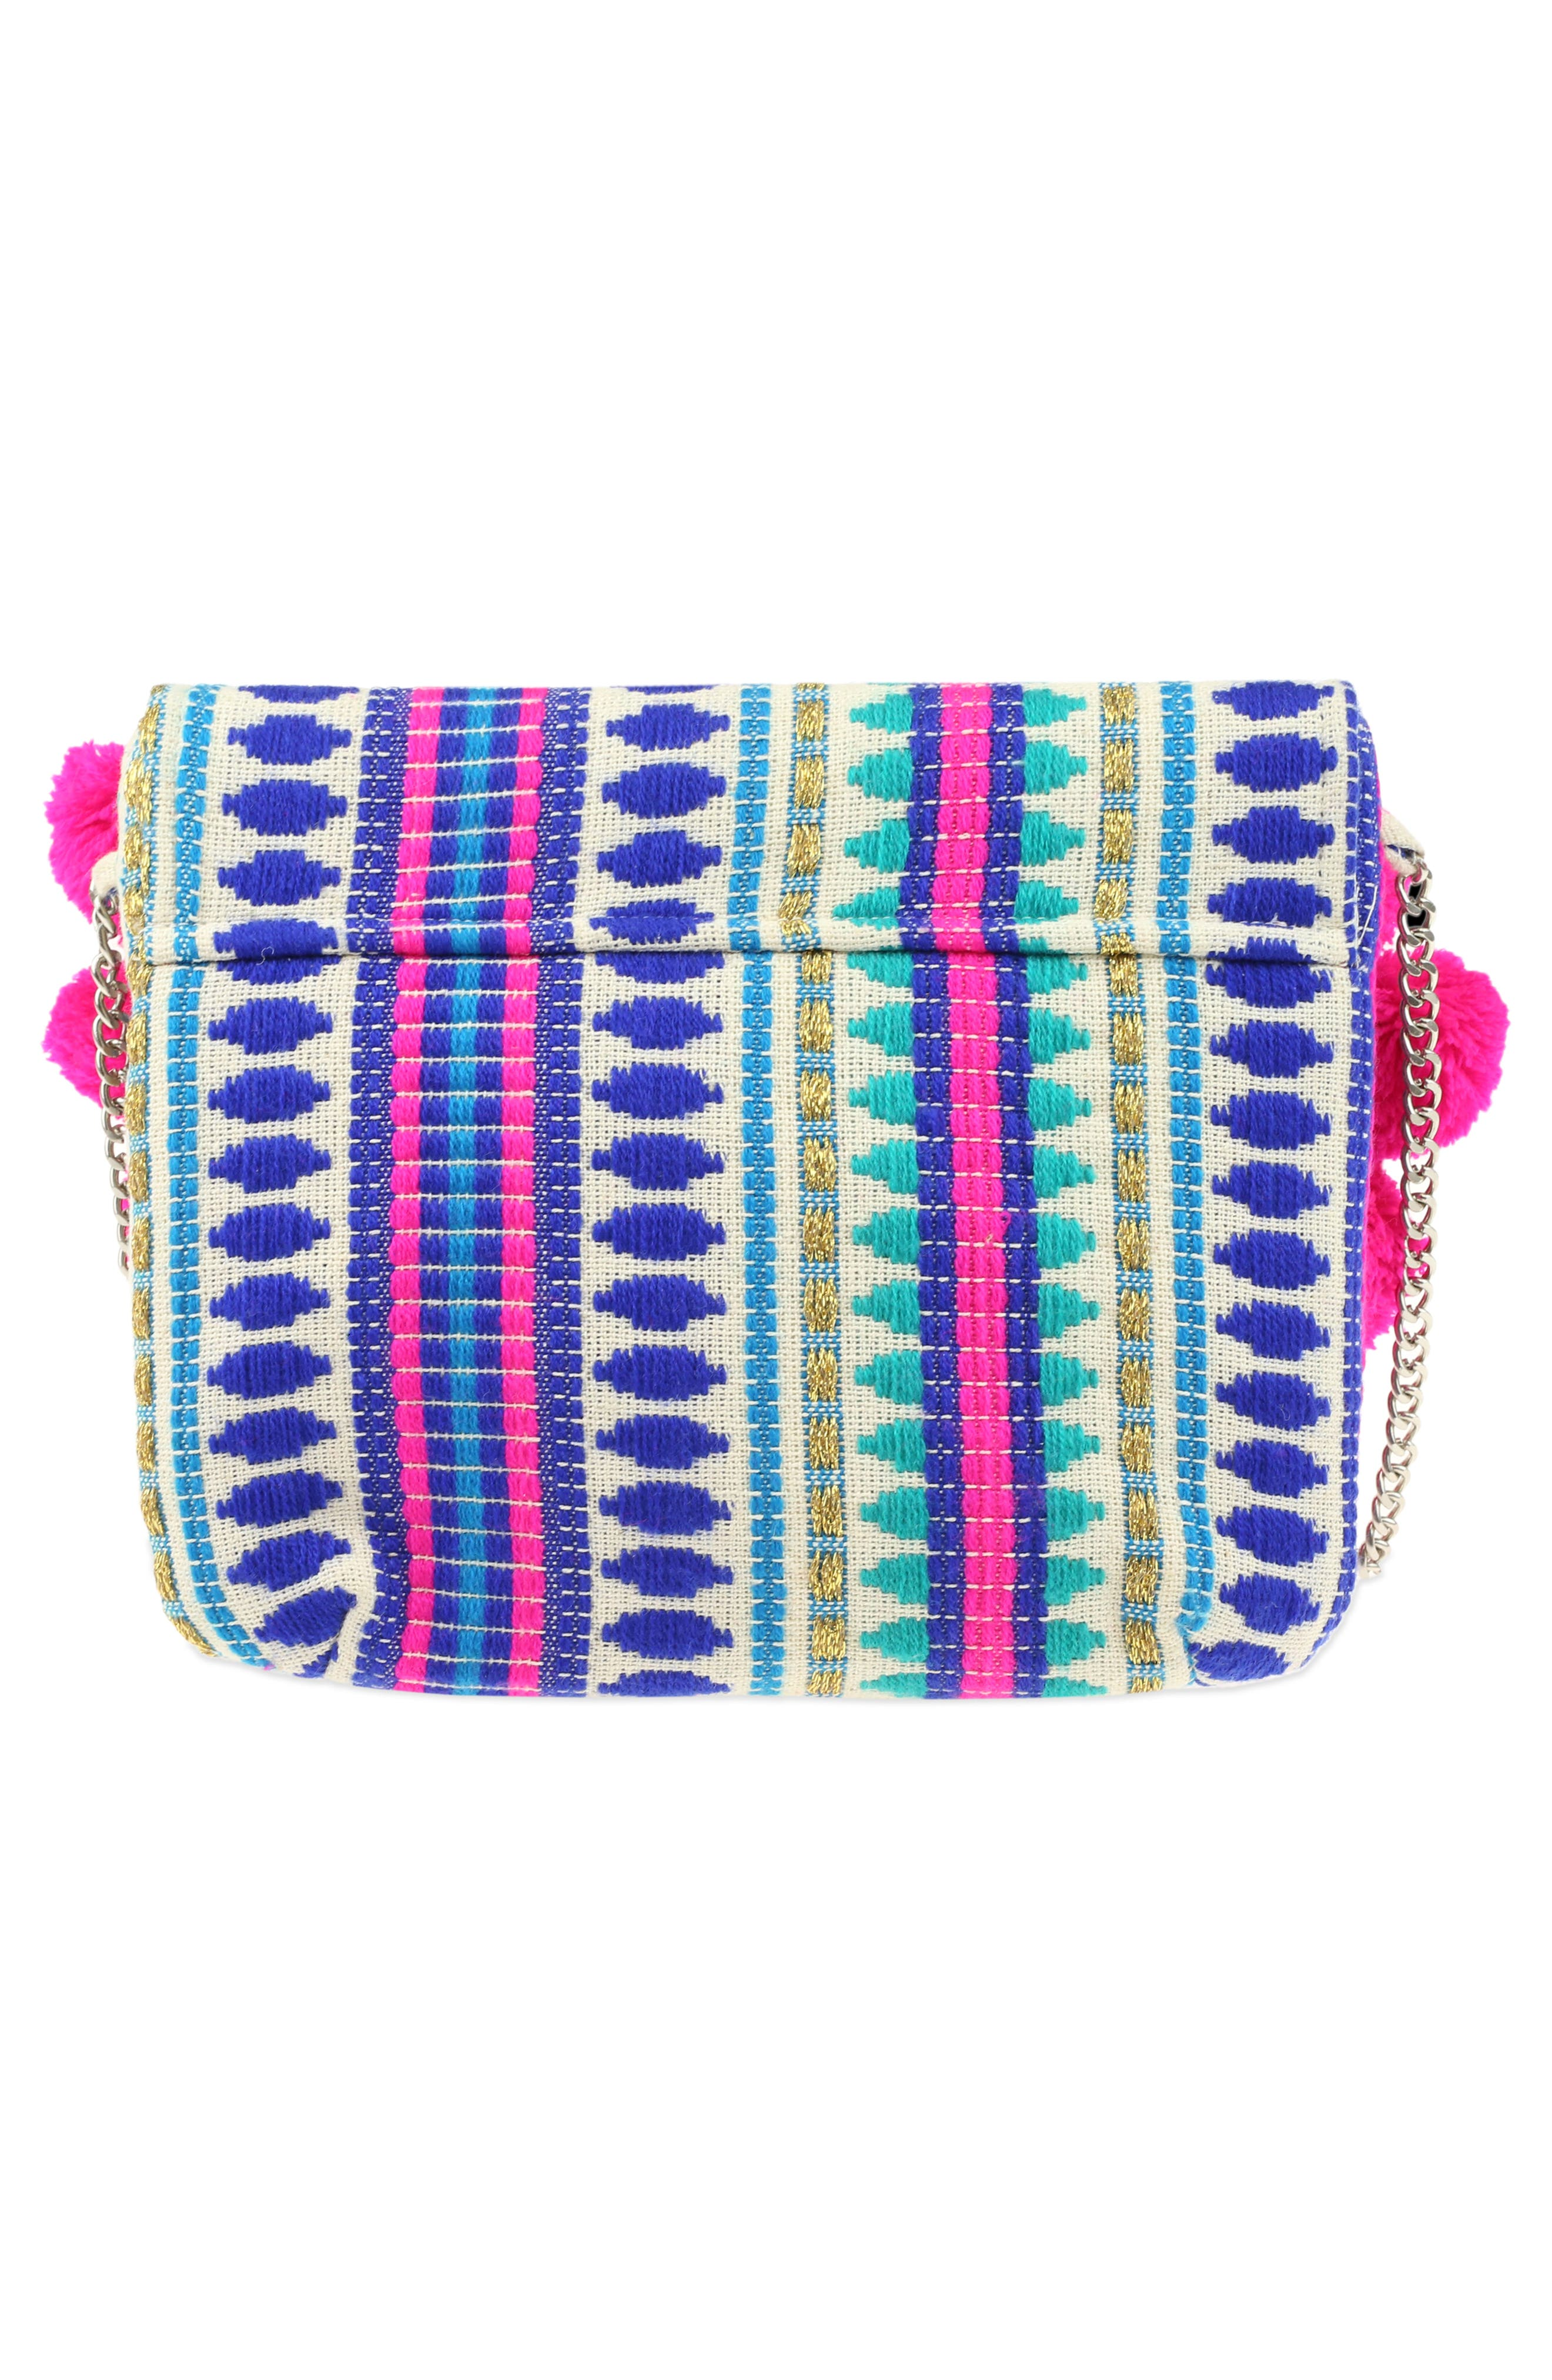 Embroidered Crossbody Bag,                             Alternate thumbnail 2, color,                             Turquoise Combo